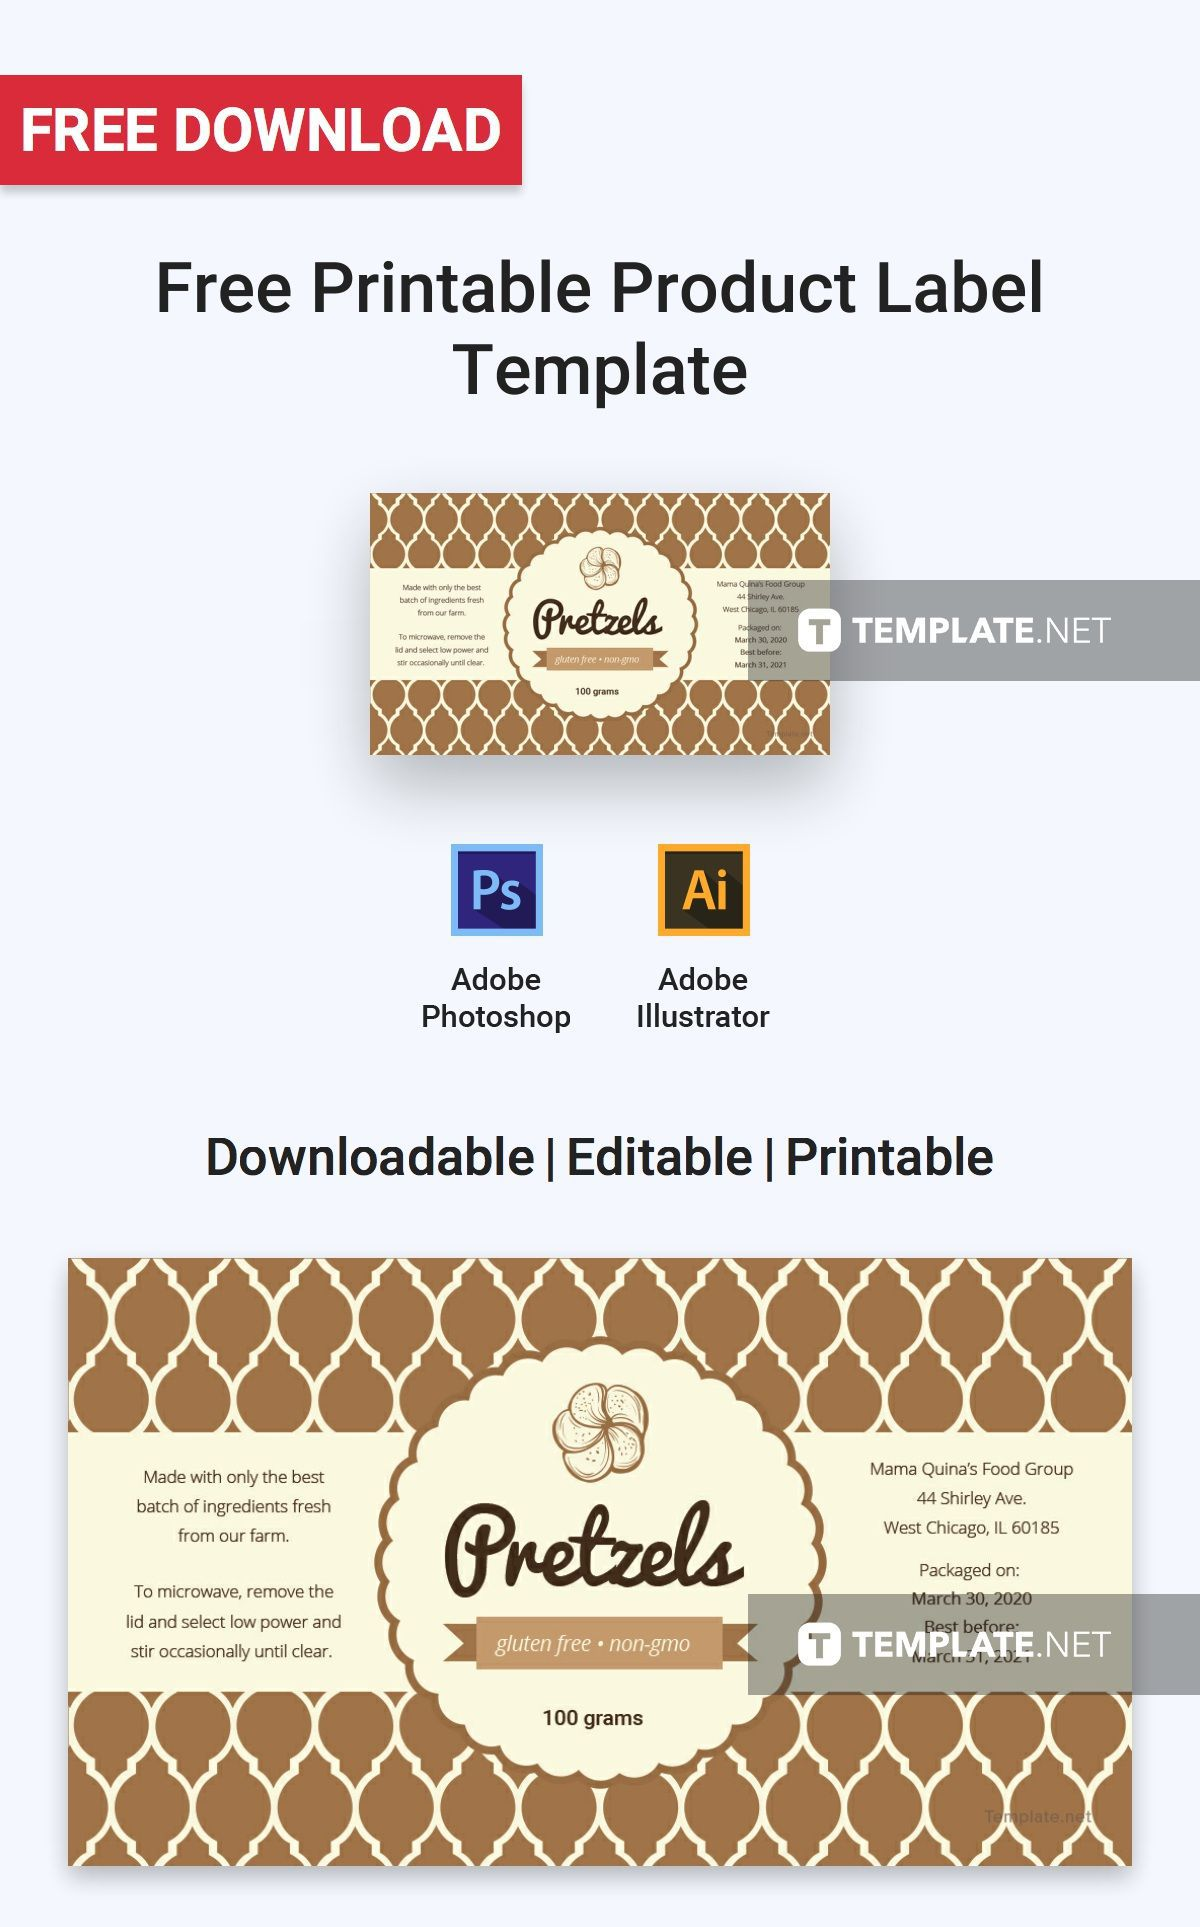 003 Marvelou Free Addres Label Design Template Highest Clarity  Templates For Word ShippingFull